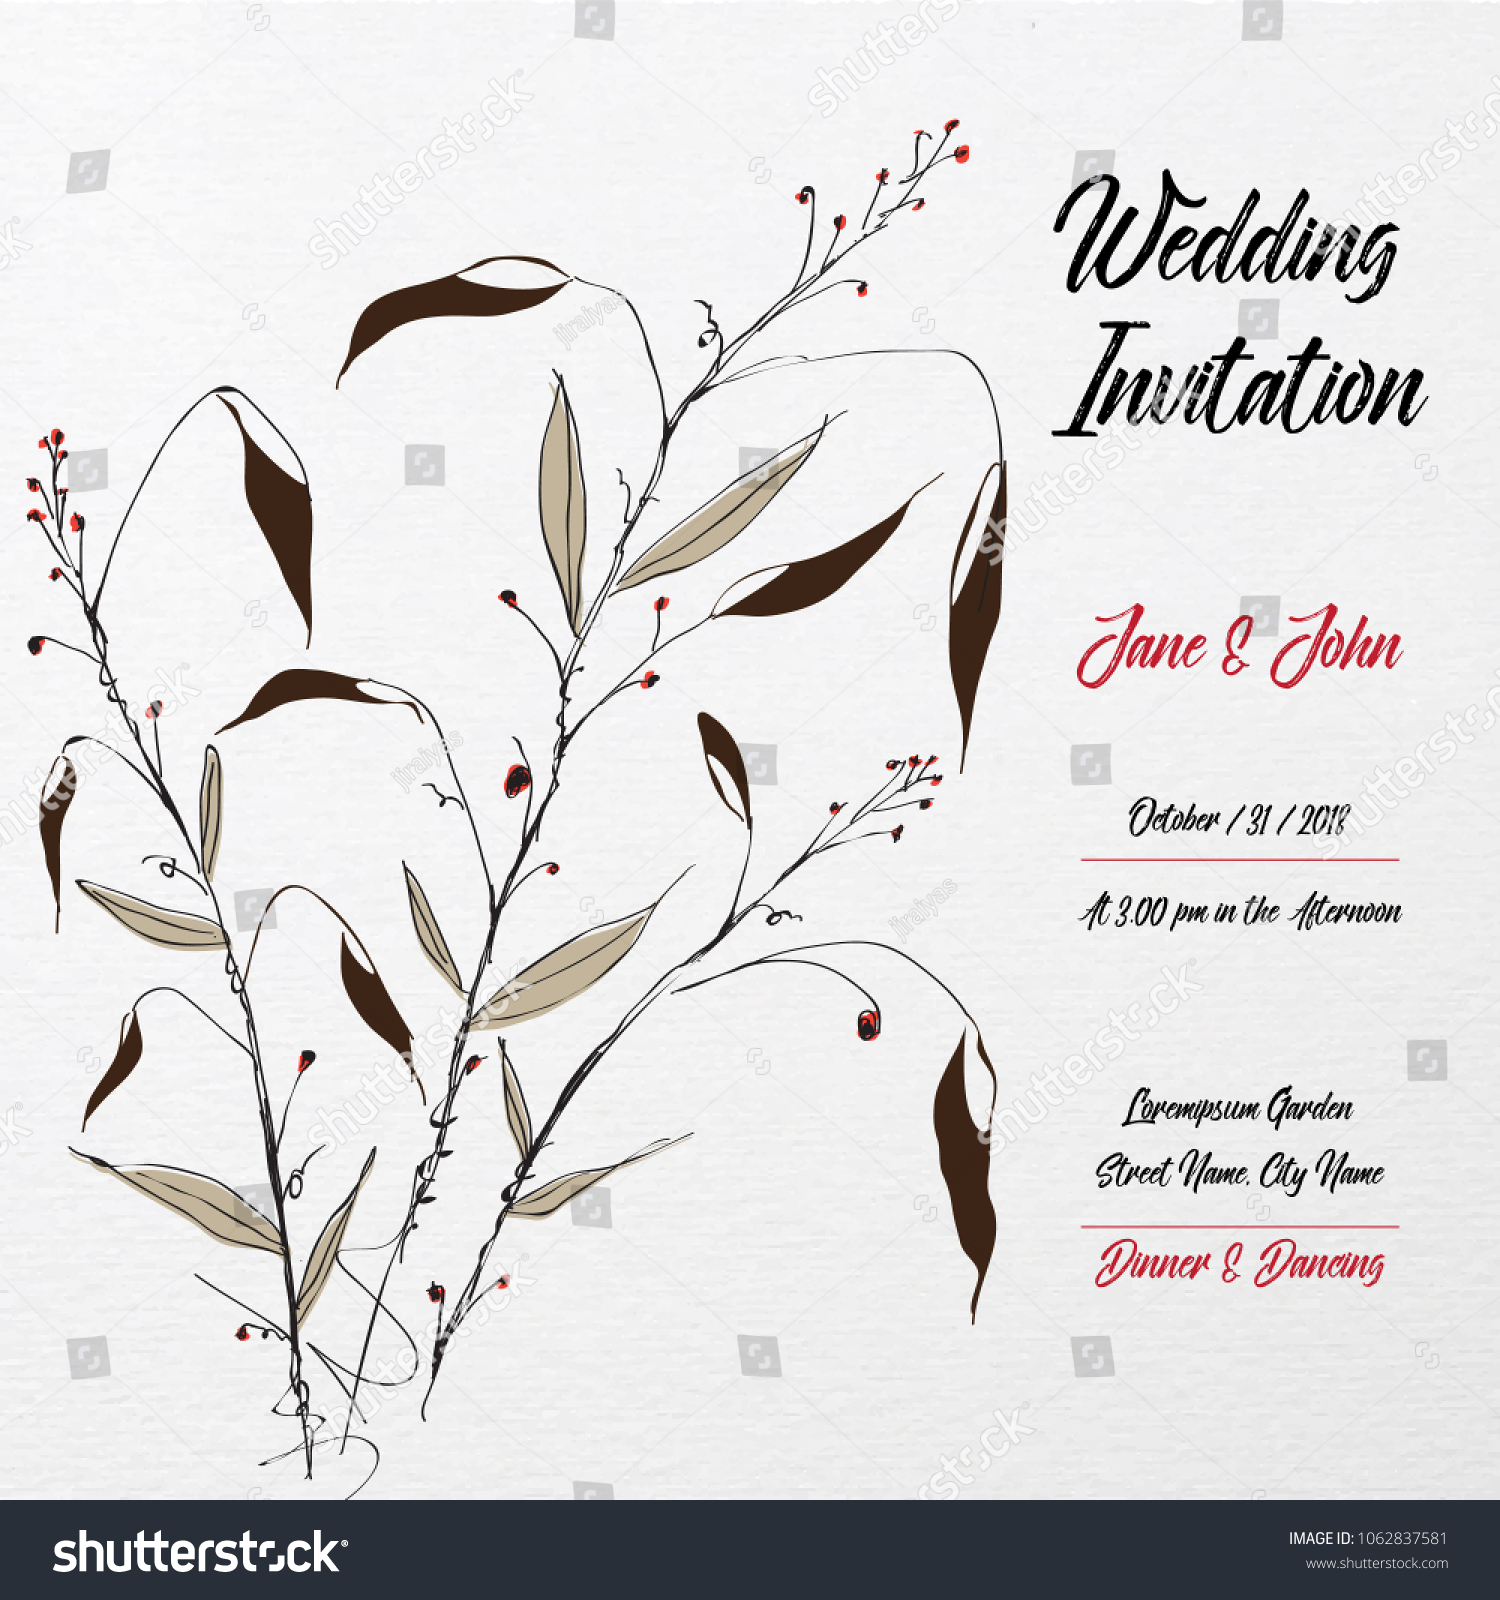 Hand drawn wedding invitation card template stock vector 1062837581 hand drawn wedding invitation card template with floral leaf japanese style 2 stopboris Images